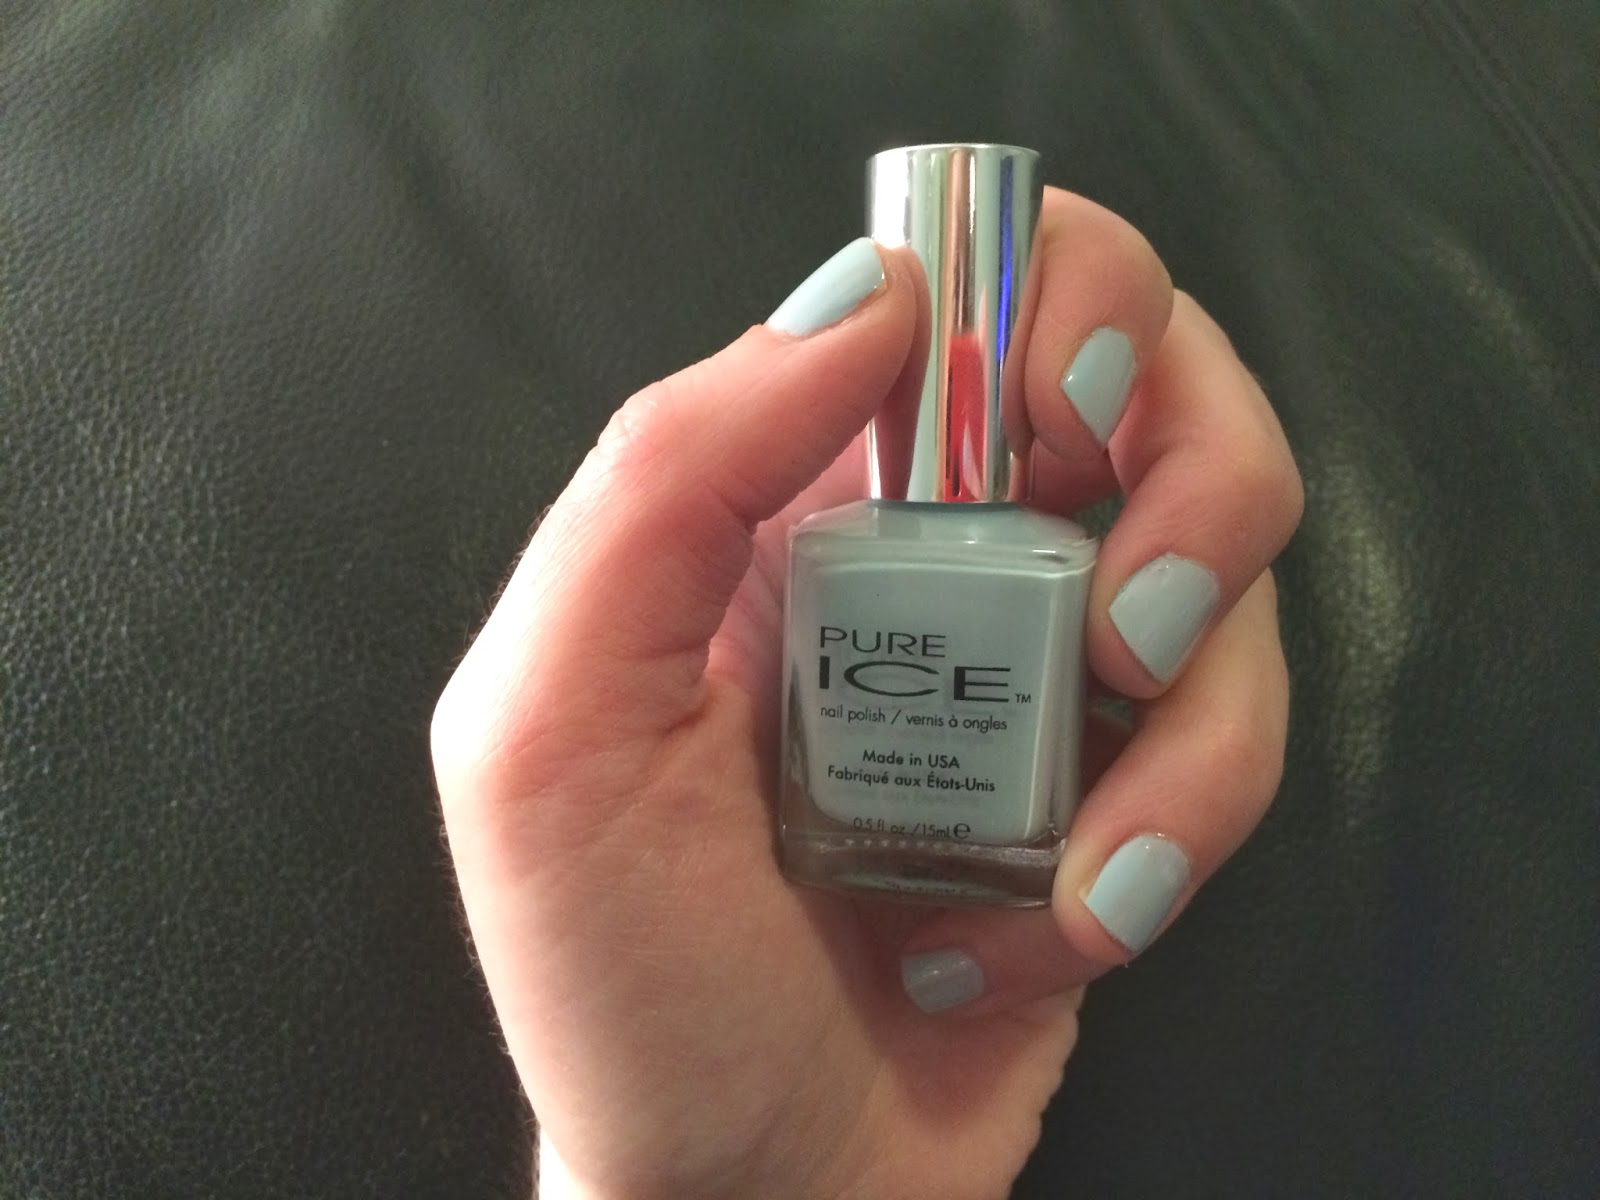 Newfound Beauty Blog: Cheap Thrills: A Nail Polish Dupe for Essie Lovers